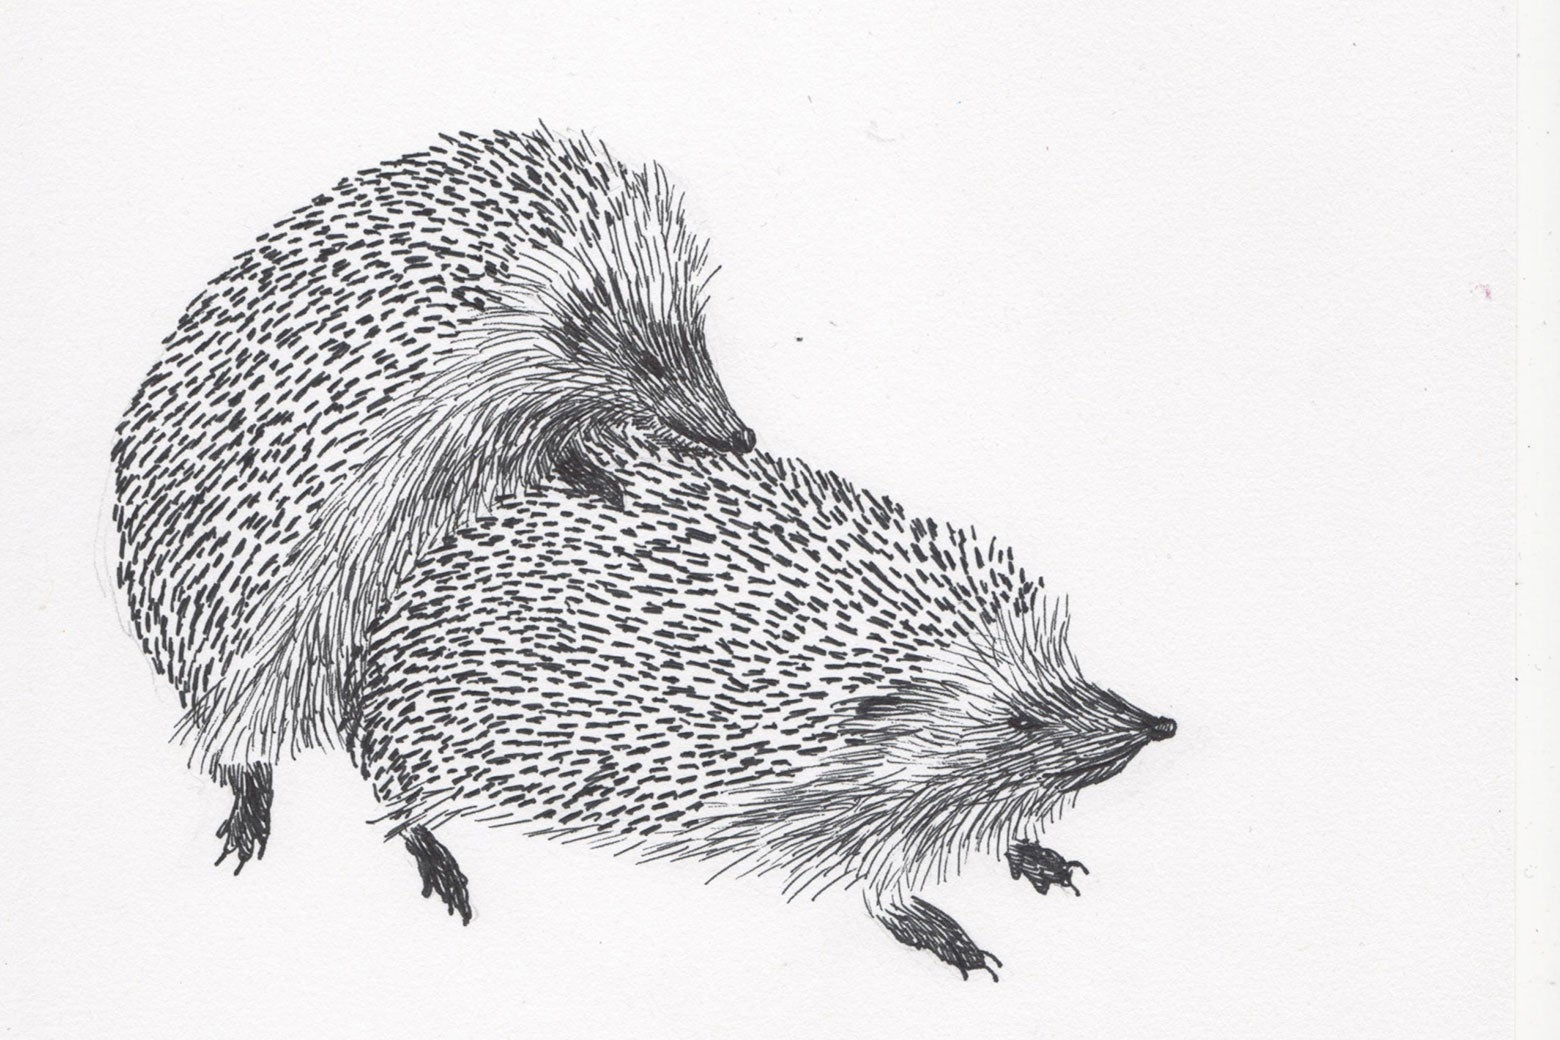 Hedgehogs doin' it.